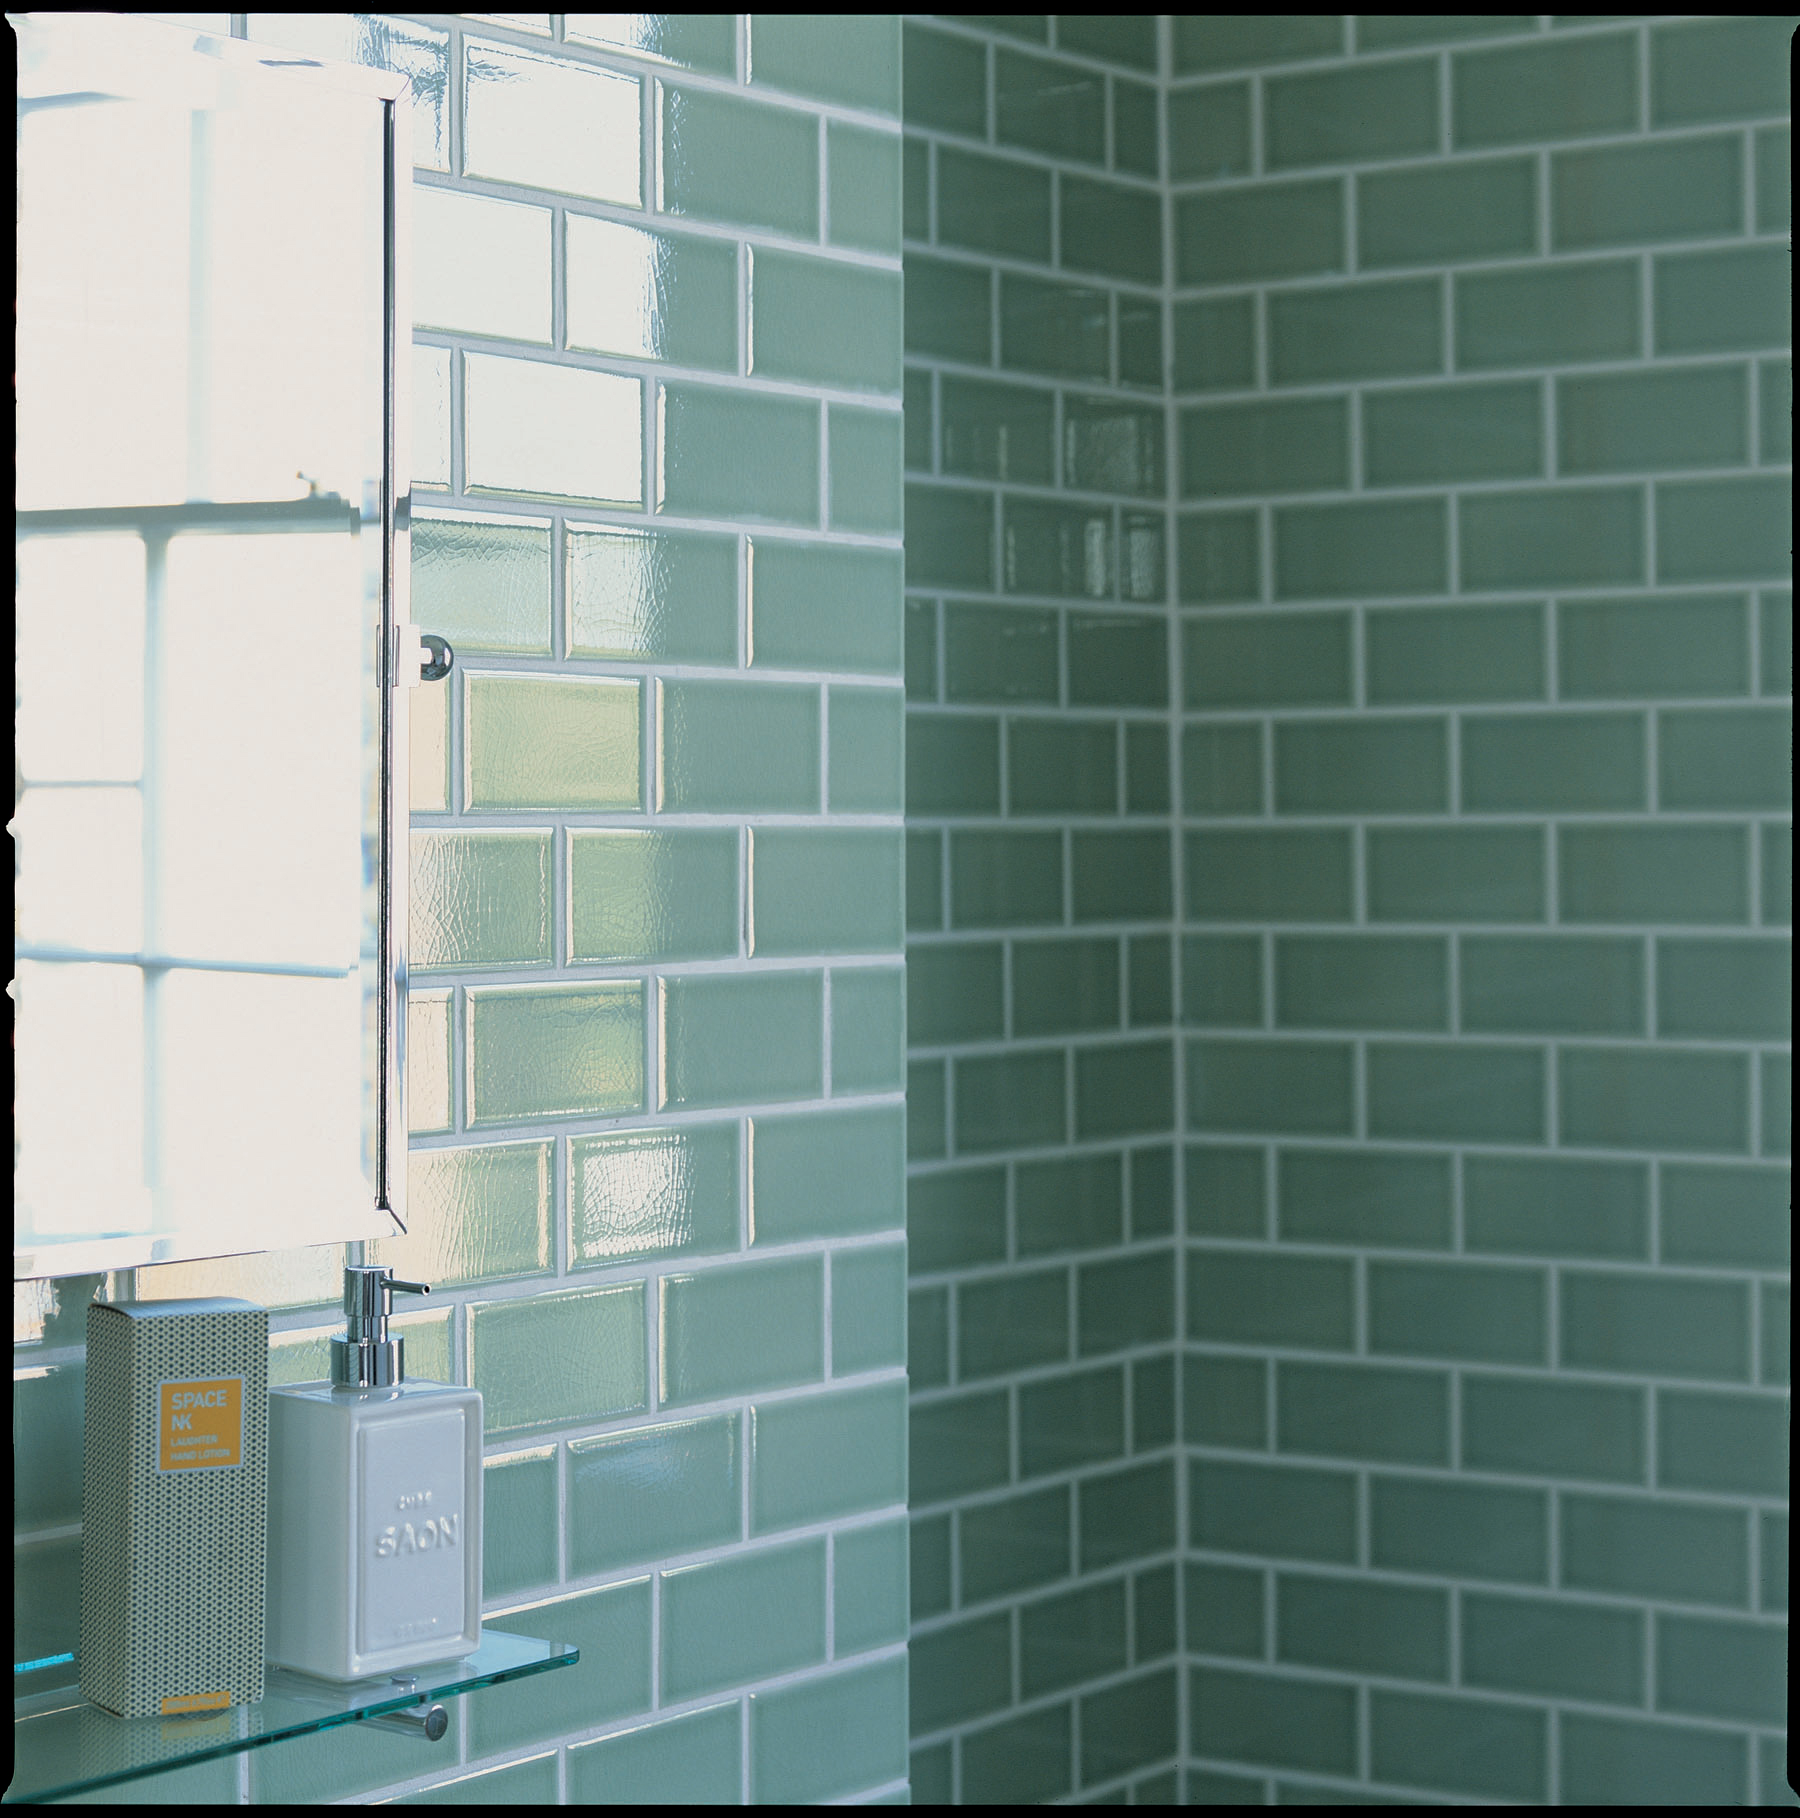 Glass Tiles In Bathroom: 30 Great Pictures And Ideas Of Old Fashioned Bathroom Tile